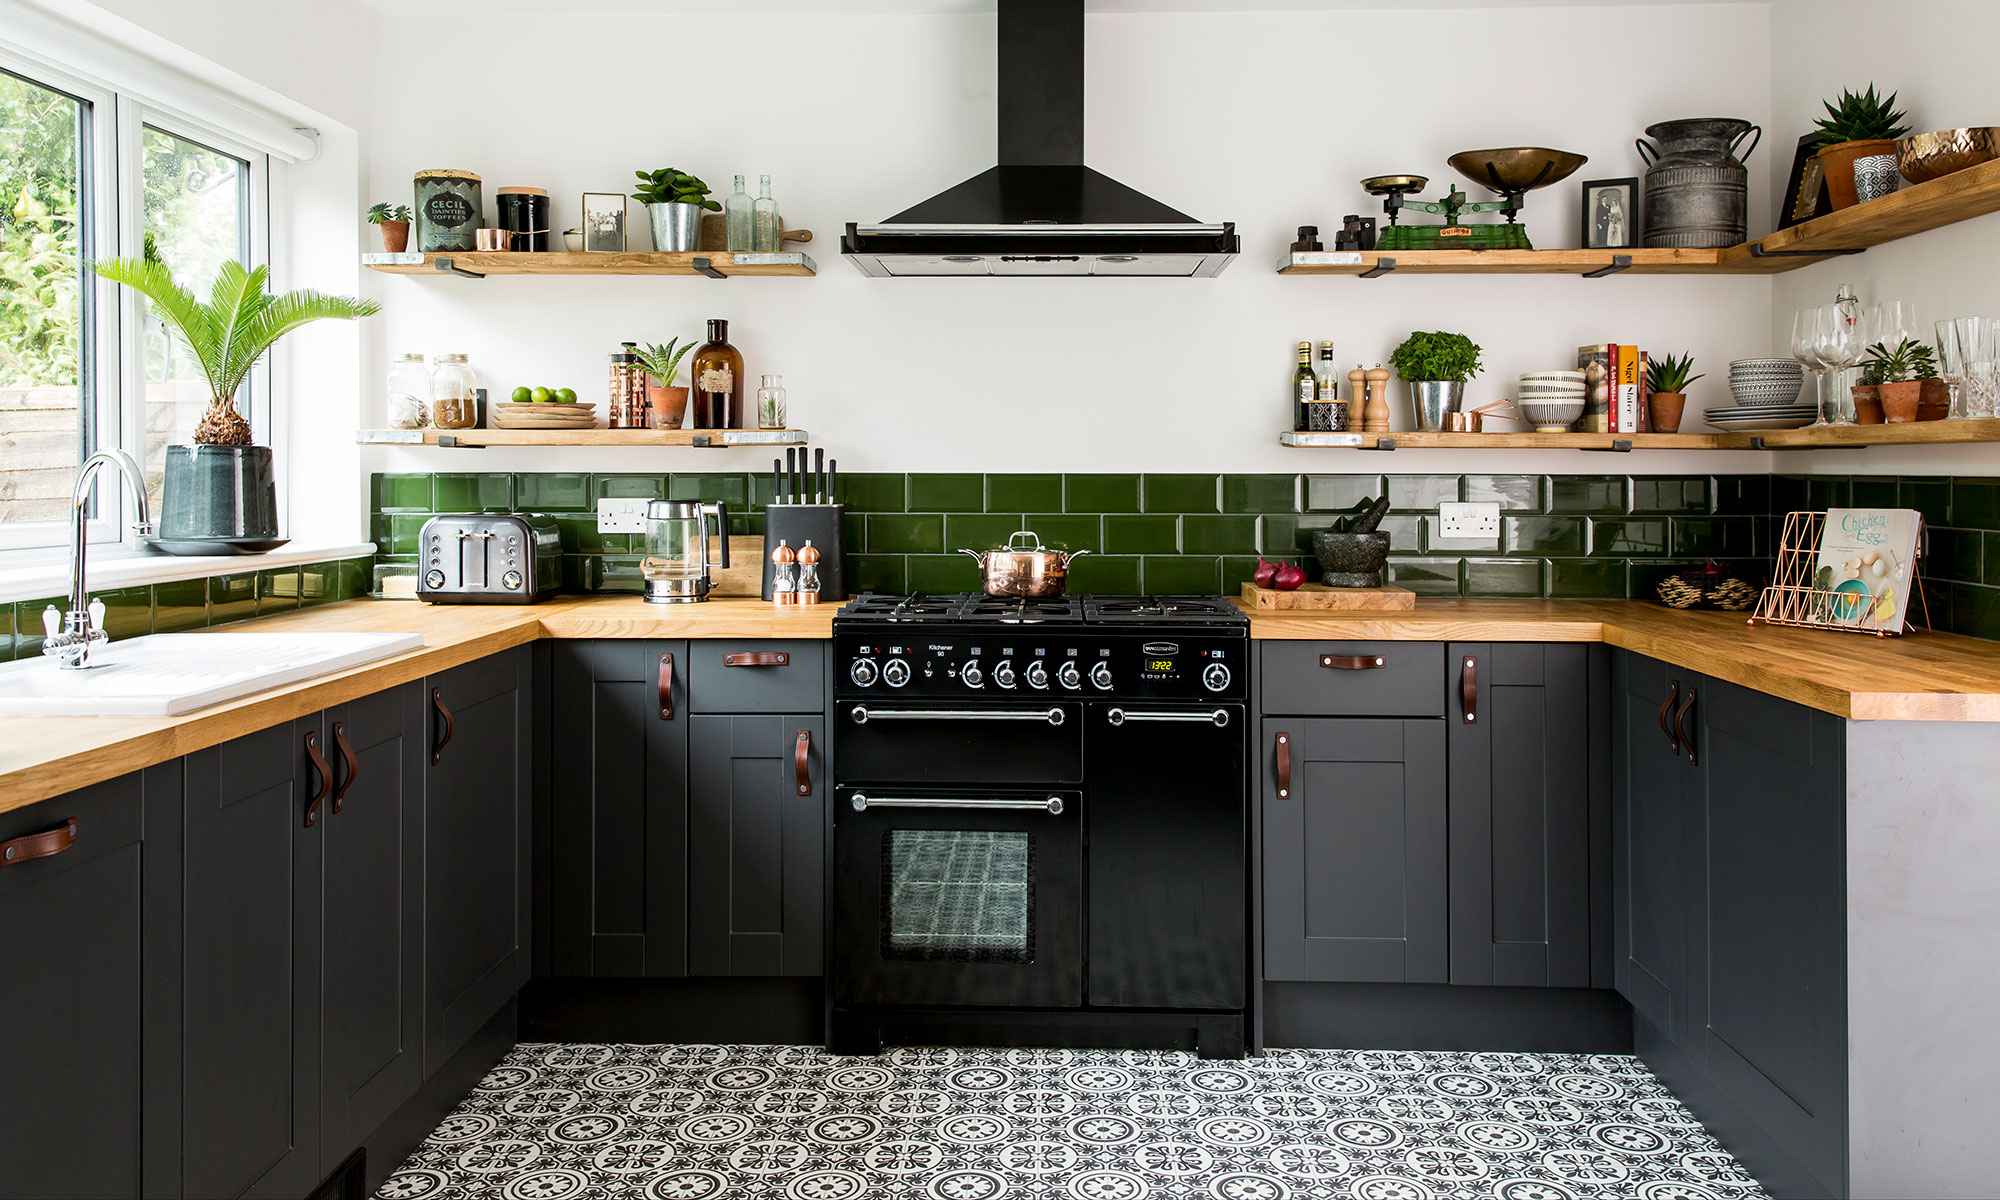 16 Grey Kitchen Ideas That Are Stylish And Sophisticated Wonderwomen Commercial Cleaning Christchurch